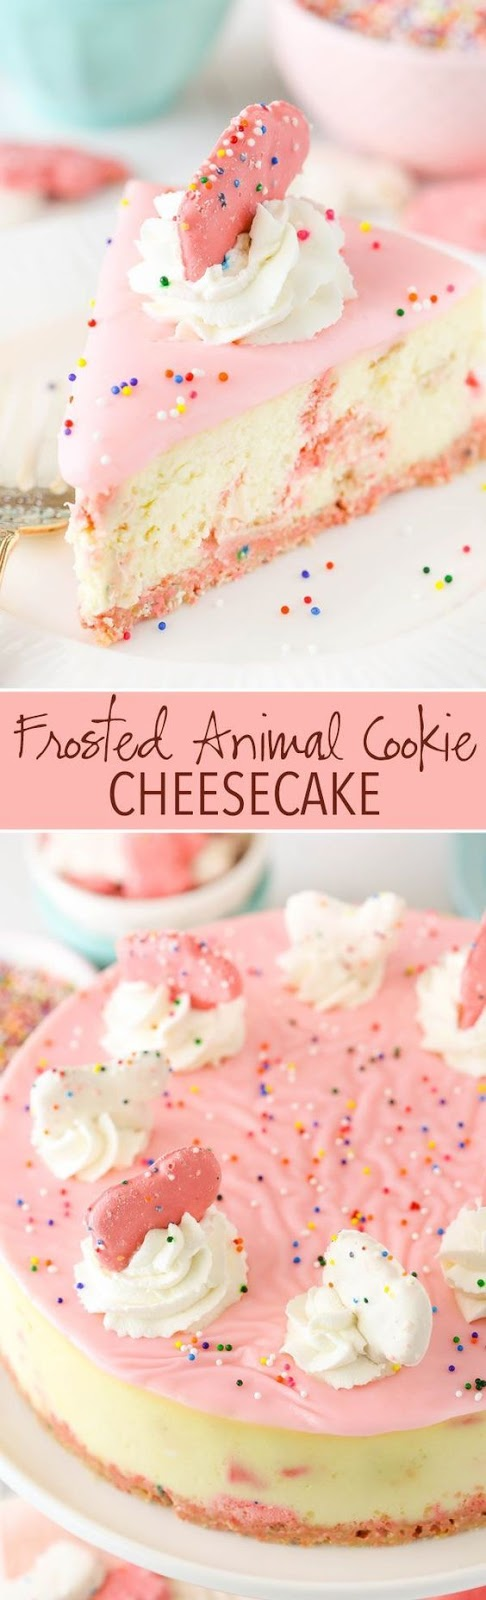 Frosted Animal Cookie Cheesecake - Dessert Recipes